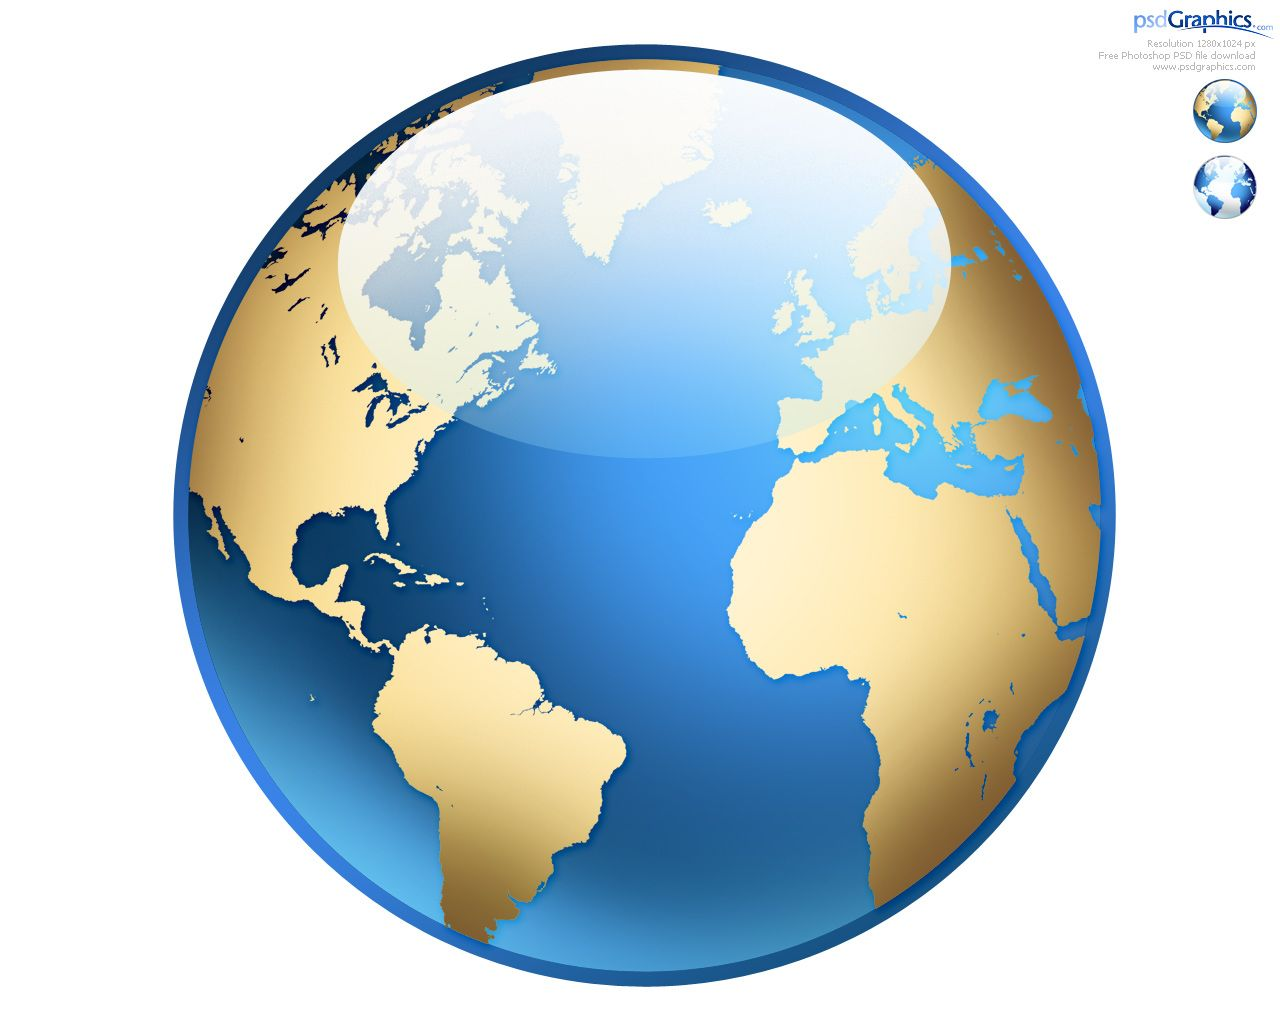 Pictures of globes of the world clipart best the world is yours ultimate globes specializes in the sale of world globes and maps for the home office and classroom established in our company has grown to become the gumiabroncs Gallery